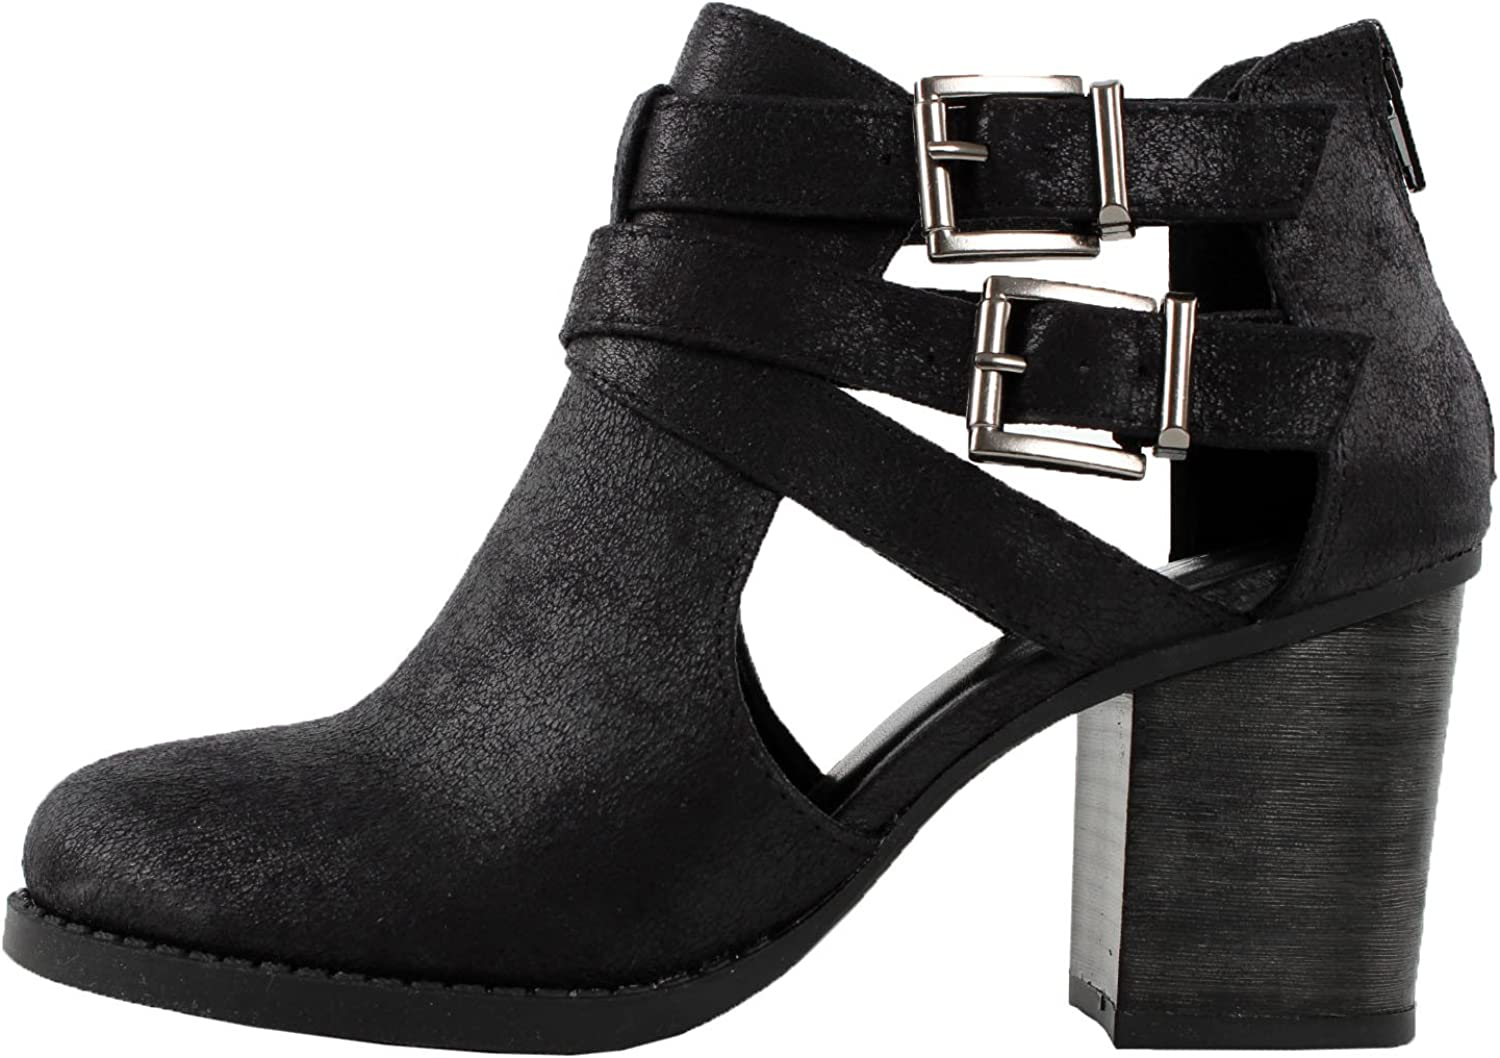 US,Black Pu M Soda Womens Scribe Ankle Bootie With Low Heel And Cut-Out Side Design,6 B